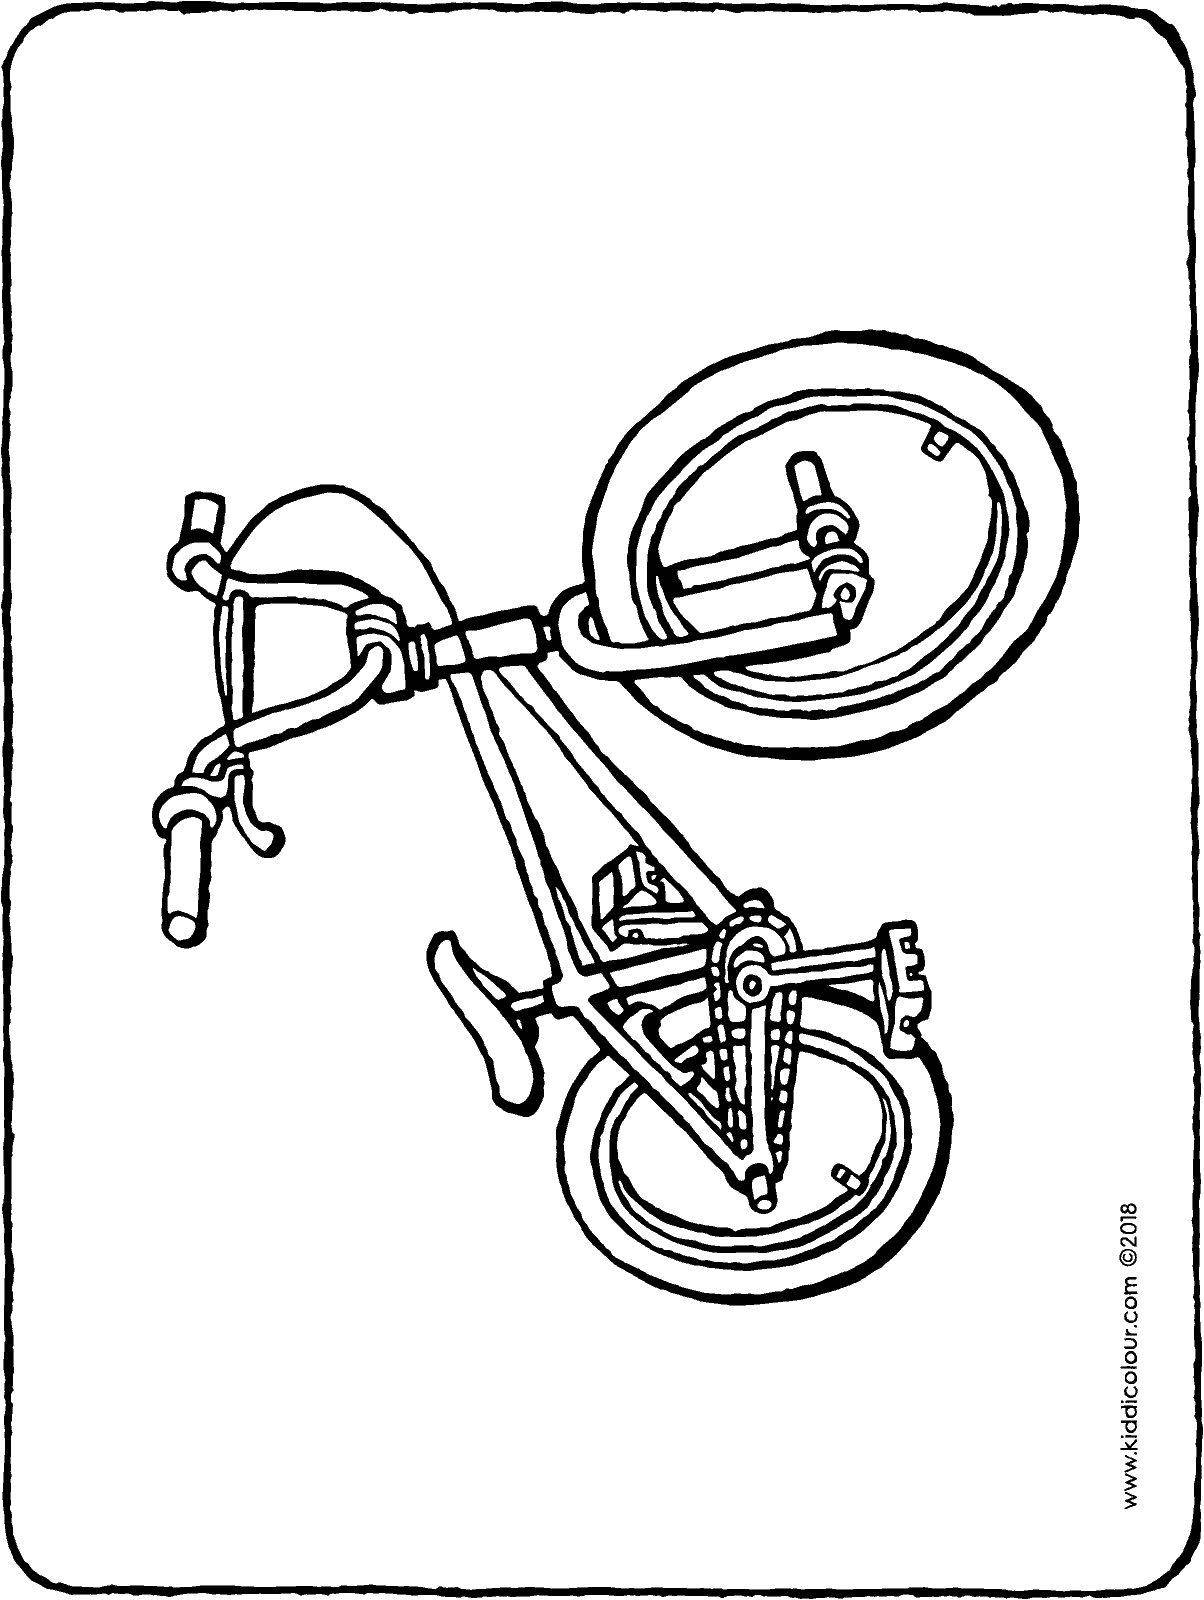 BMX bike colouring page drawing picture 01H